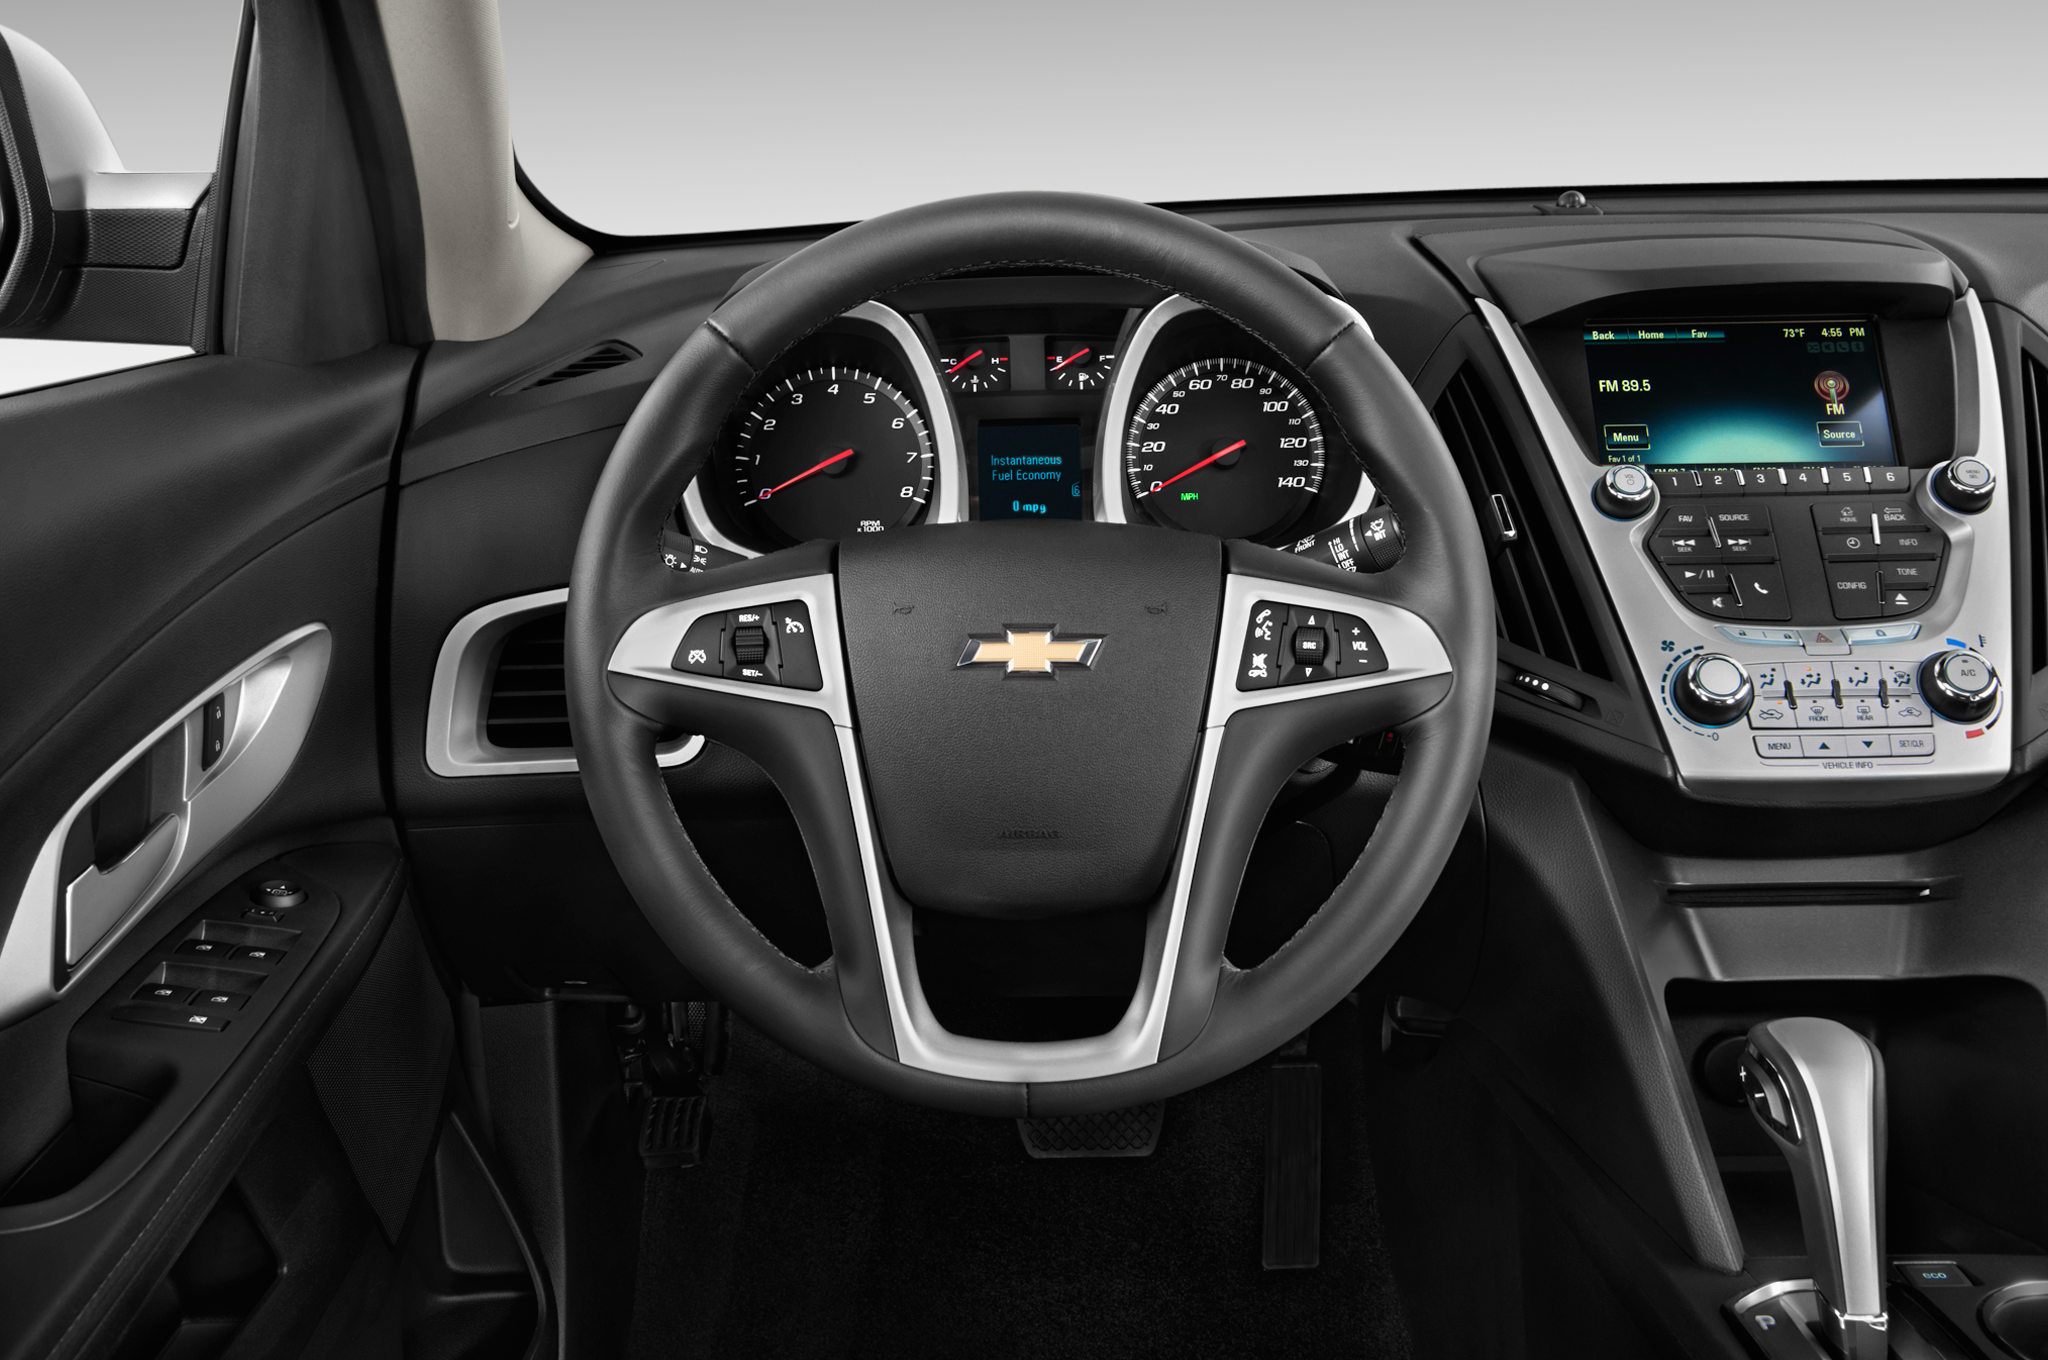 2012 chevrolet equinox ltz editors 39 notebook automobile magazine. Black Bedroom Furniture Sets. Home Design Ideas